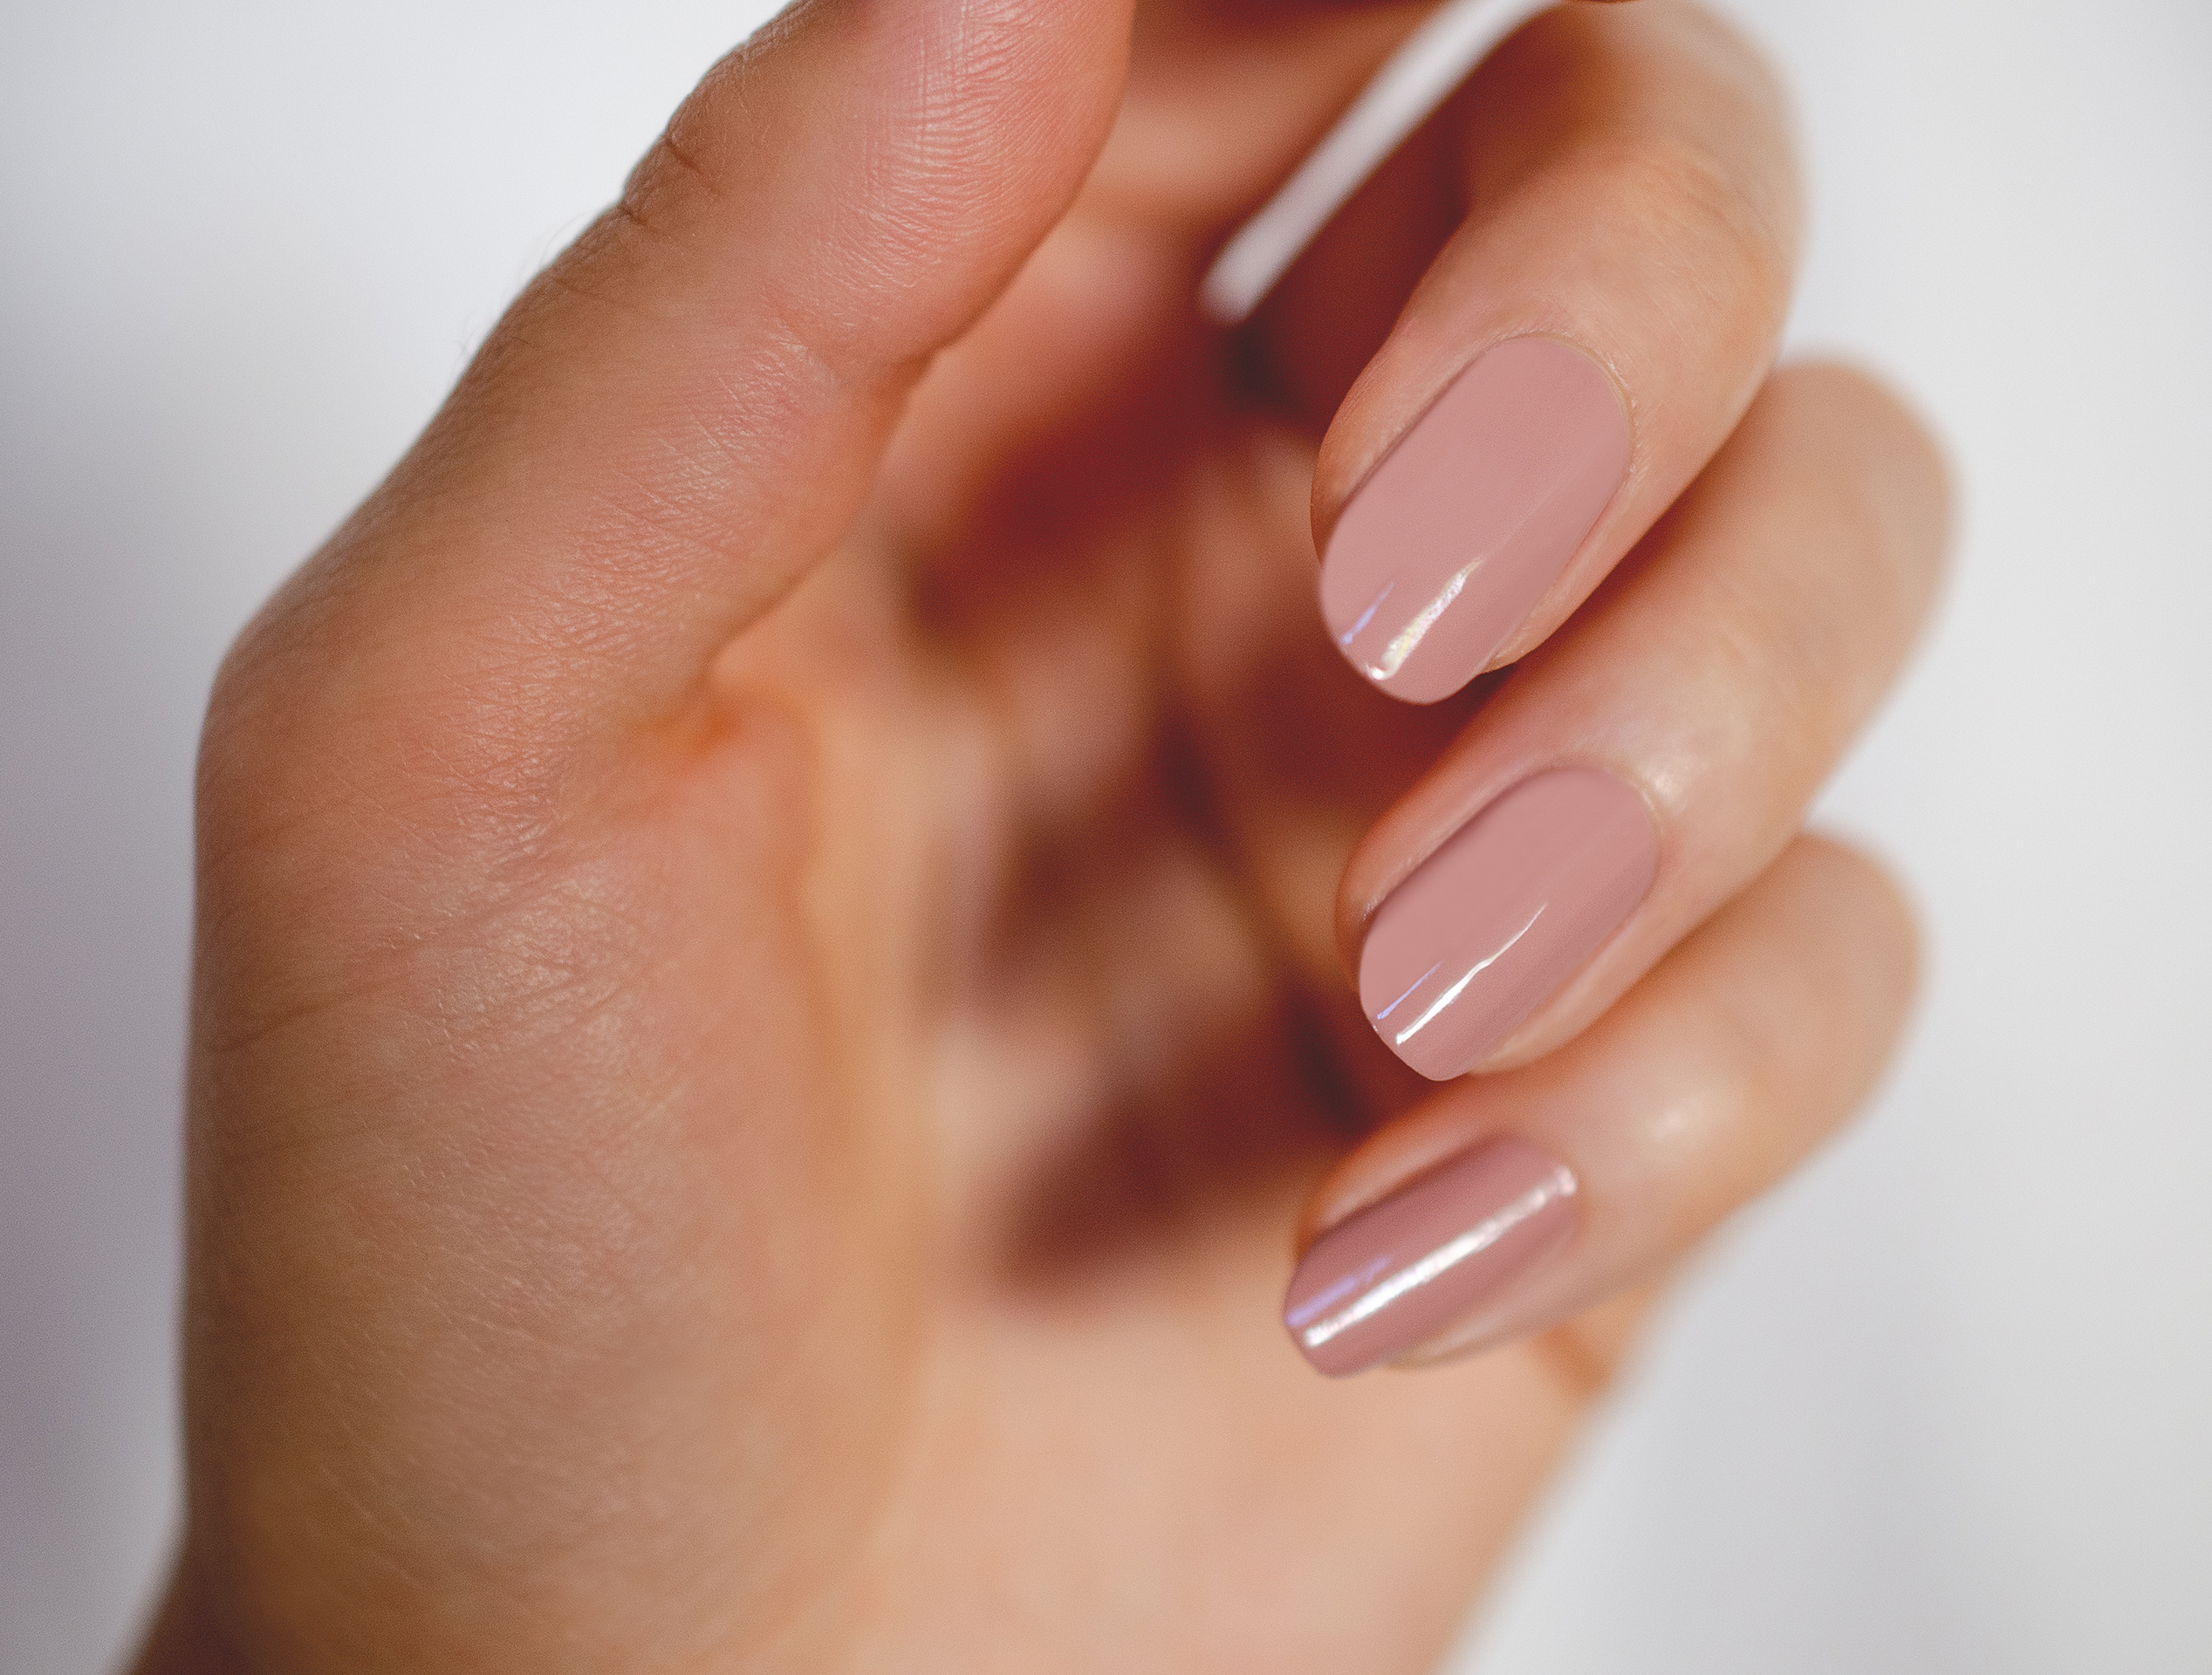 round nail shape with dusty pink nail polish by sienna